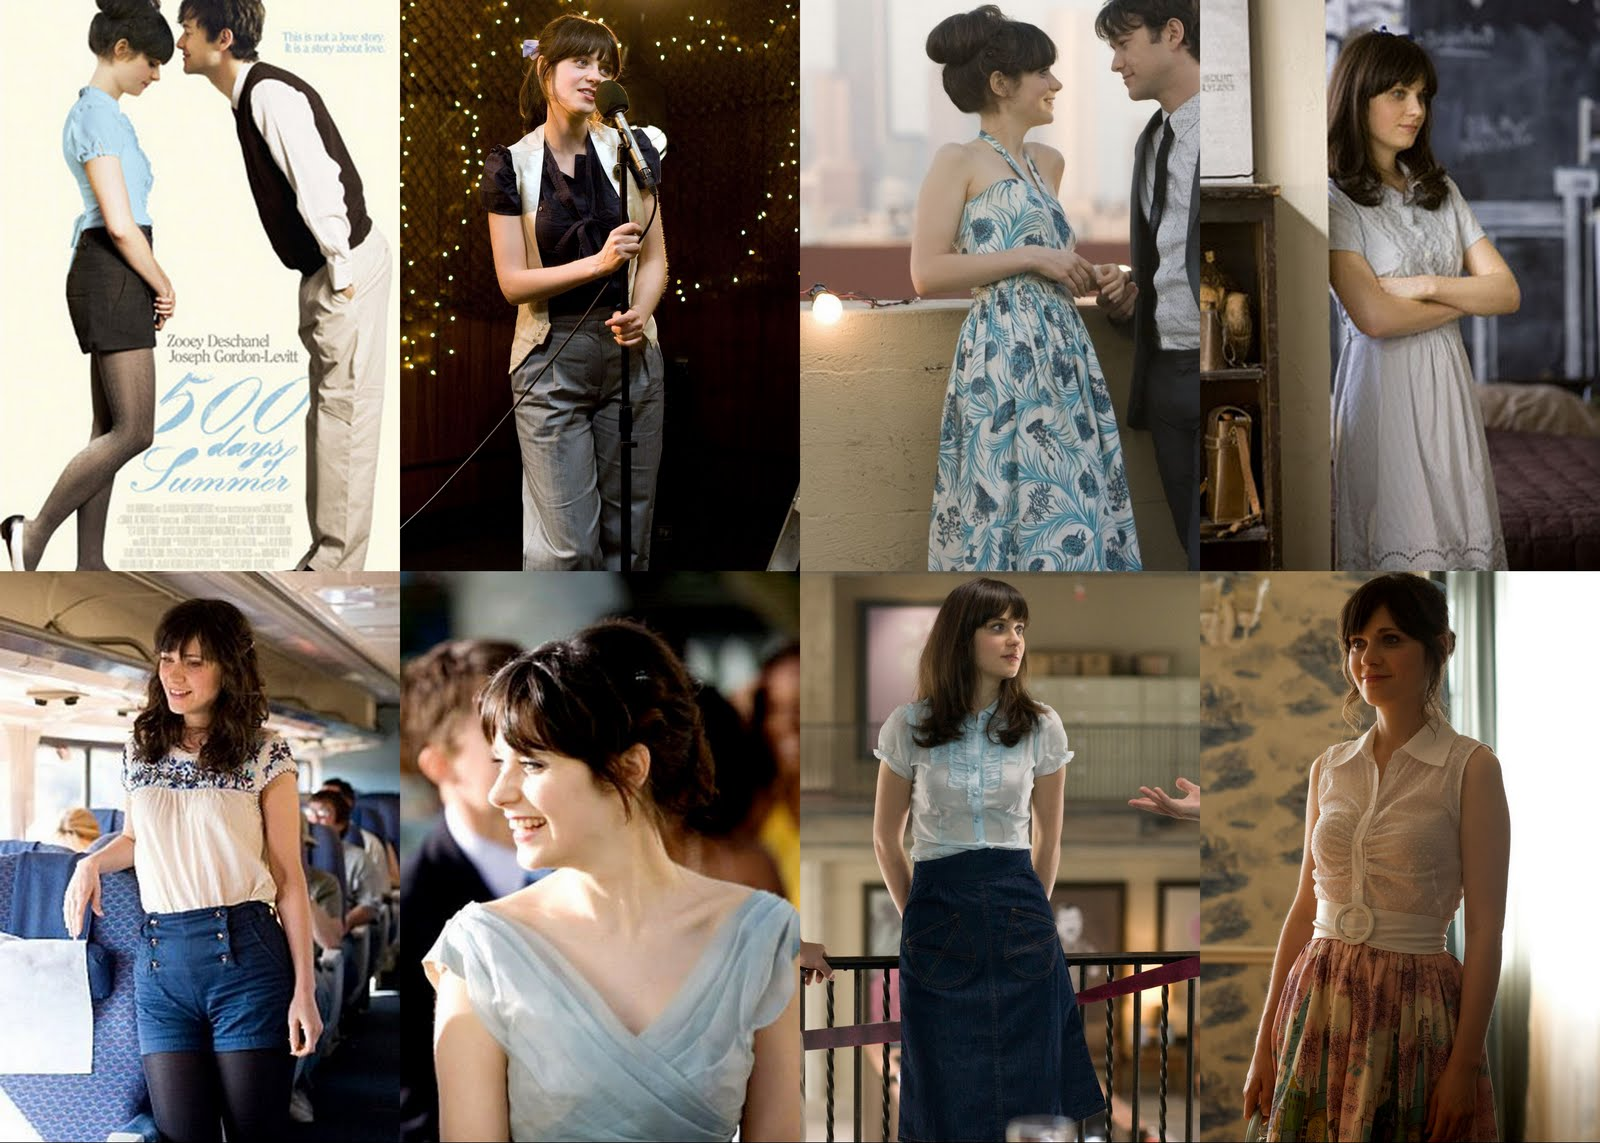 Zooey Deschanel Clothes in 500 Days of Summer